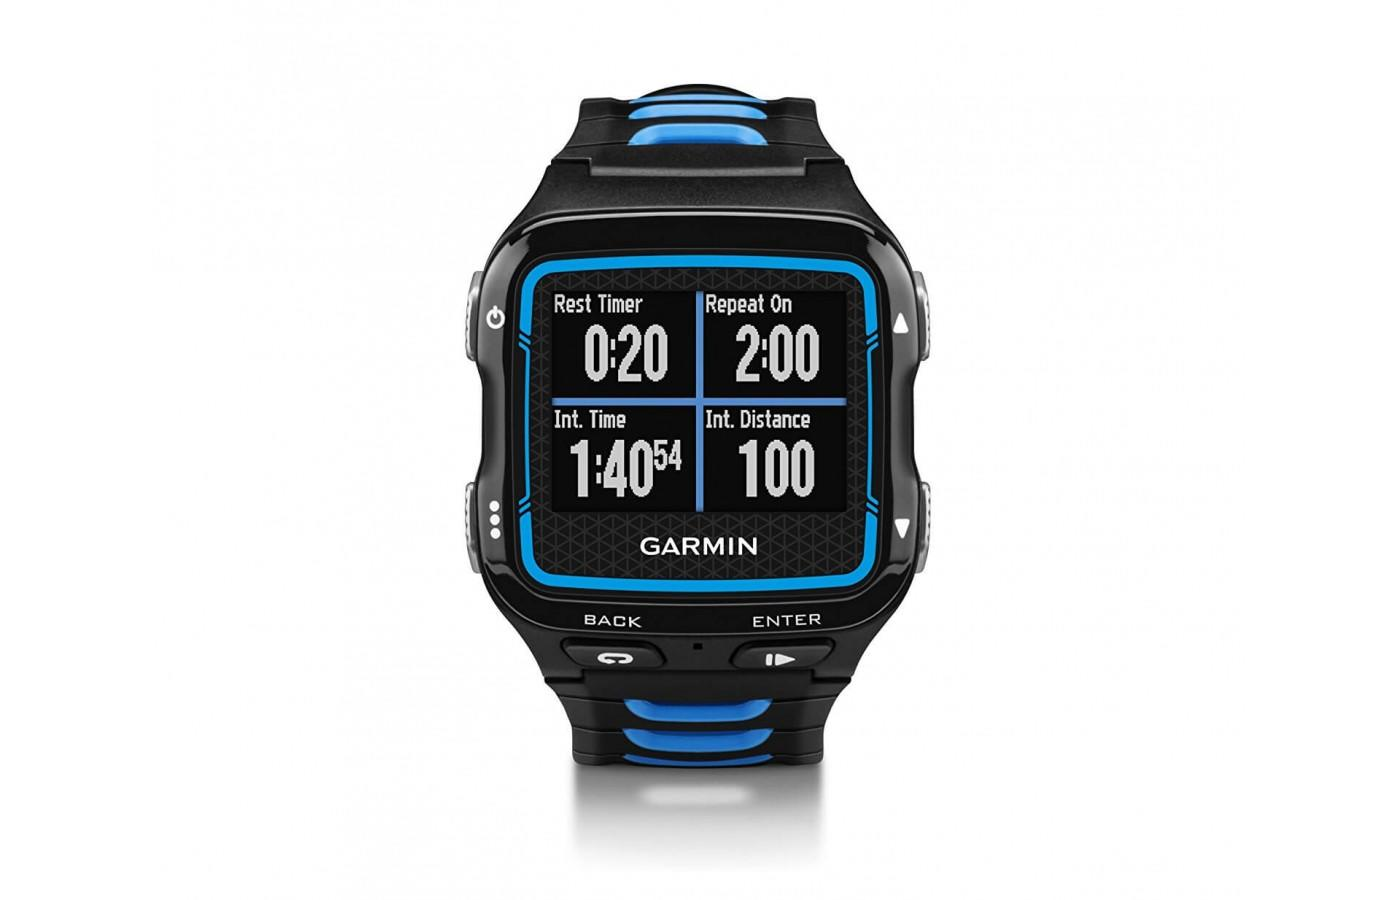 Garmin Forerunner 920 XT features a slick screen